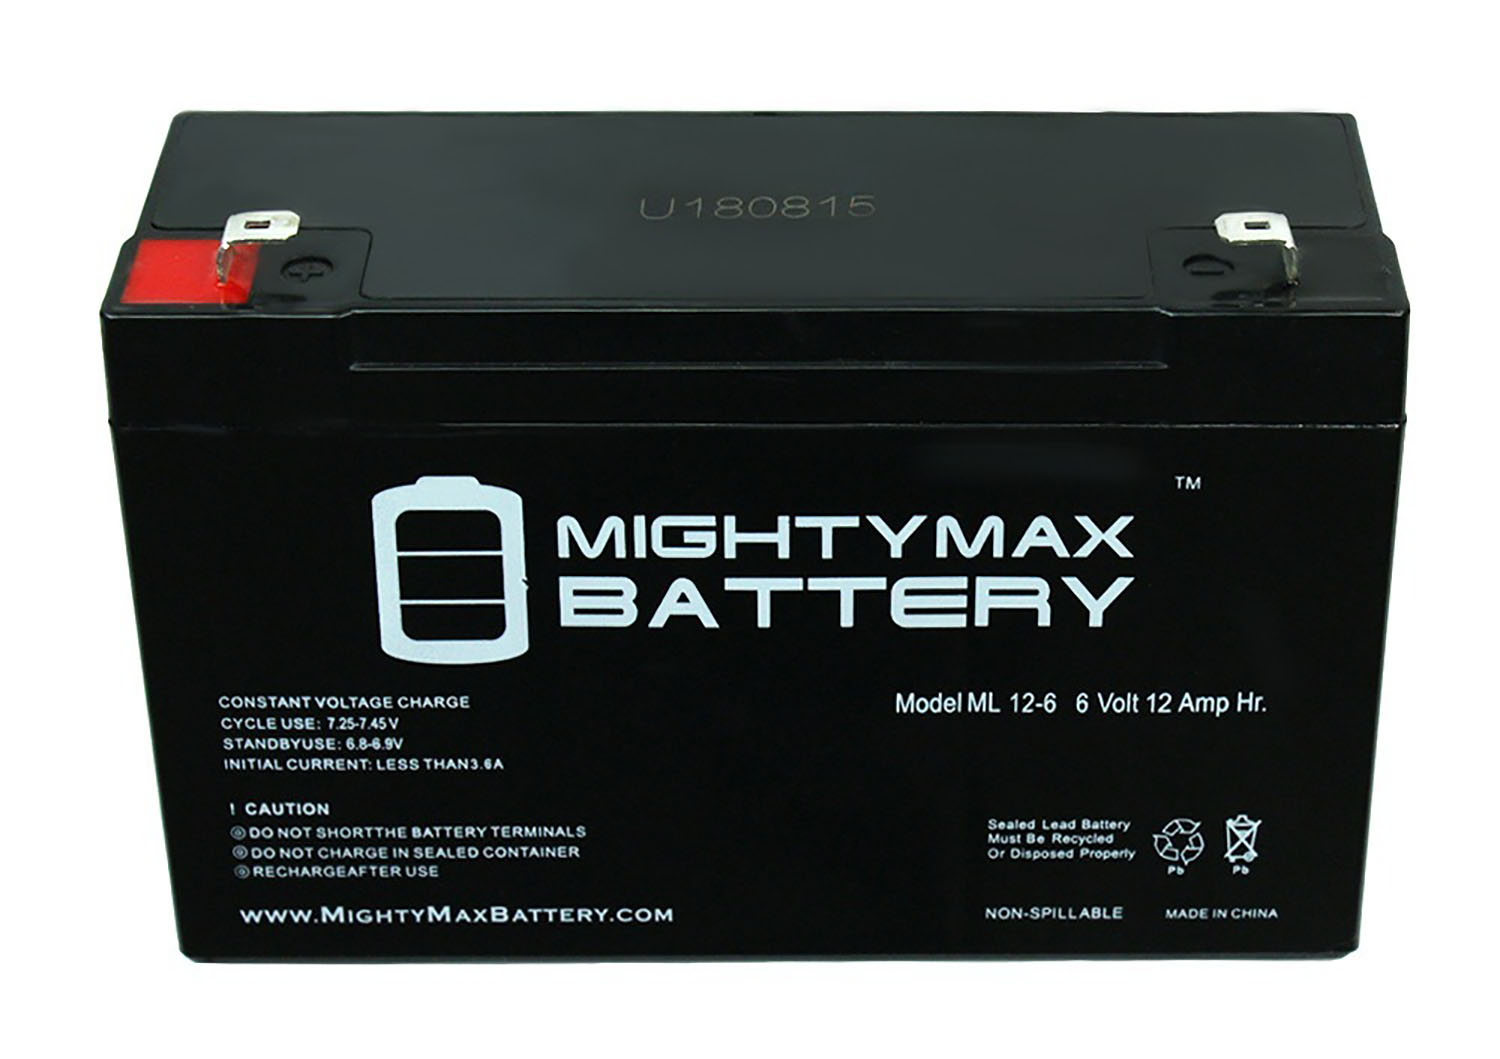 Mighty Max Battery 6V 12AH Replacement Battery for Tripp Lite BC PRO 850 BCPro 1050-6 Pack Brand Product